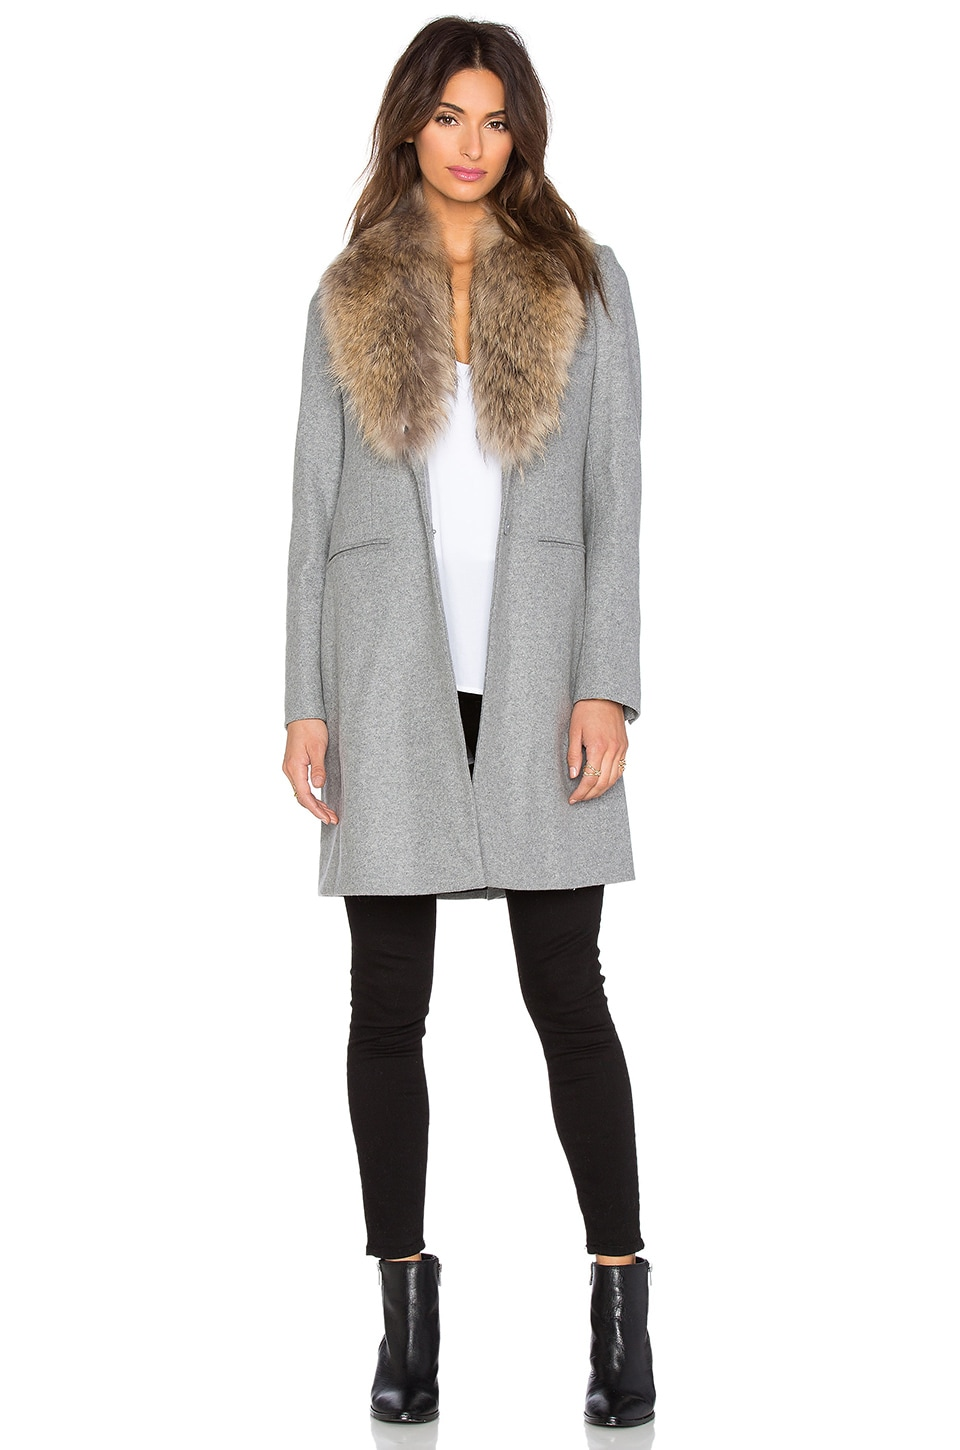 SAM. Crosby Asiatic Raccoon Fur Coat in Heather Grey